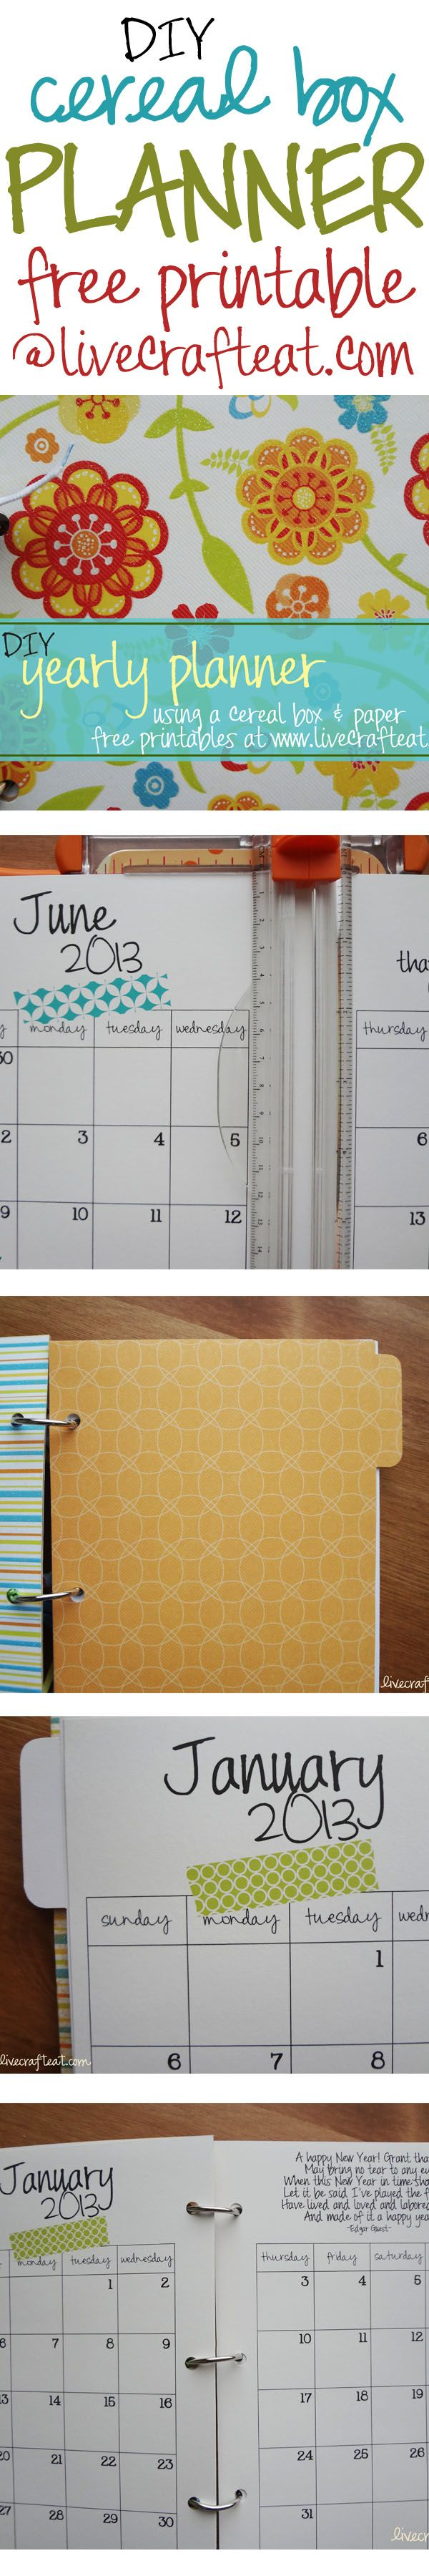 Scrapbook paper note - Diy Planner From A Cereal Box 2013 Free Printables